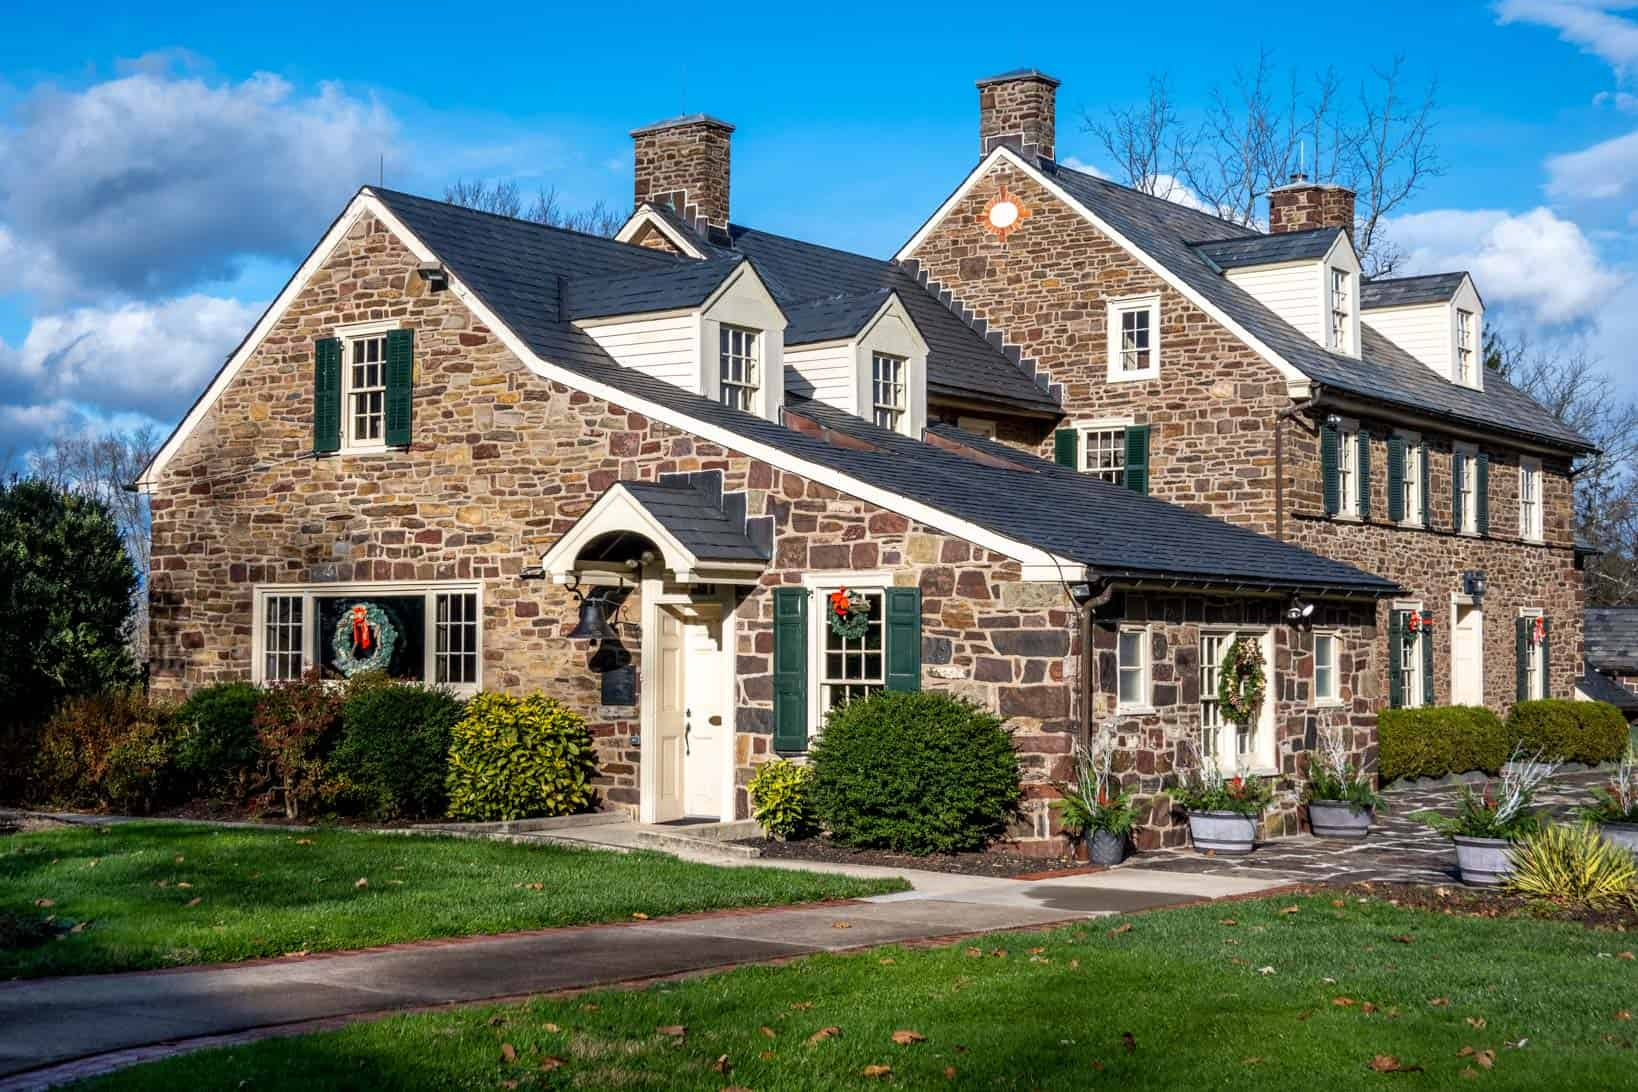 Large stone house with Christmas wreaths on the windows